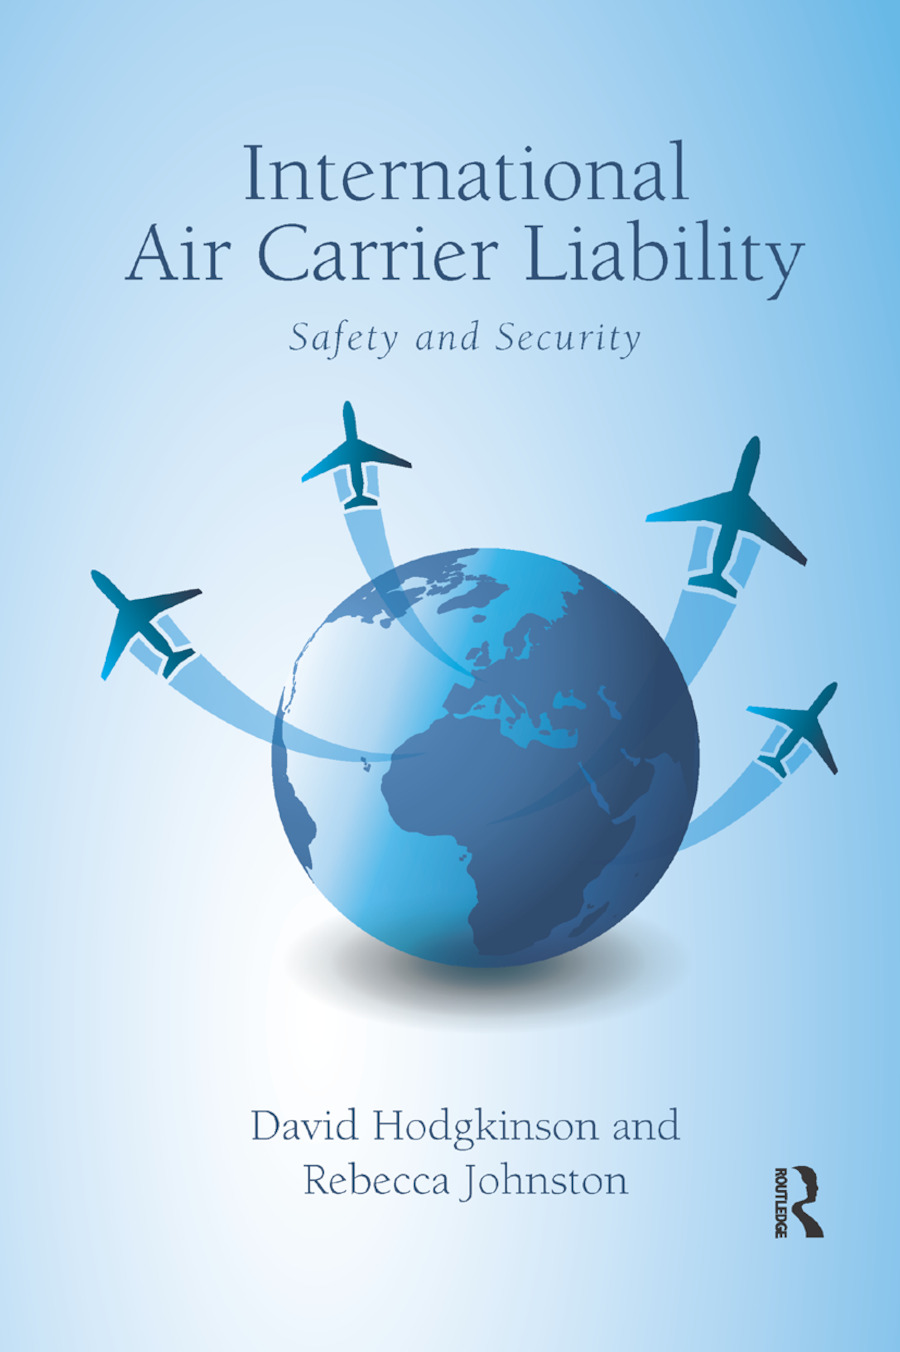 International Air Carrier Liability: Safety and Security book cover